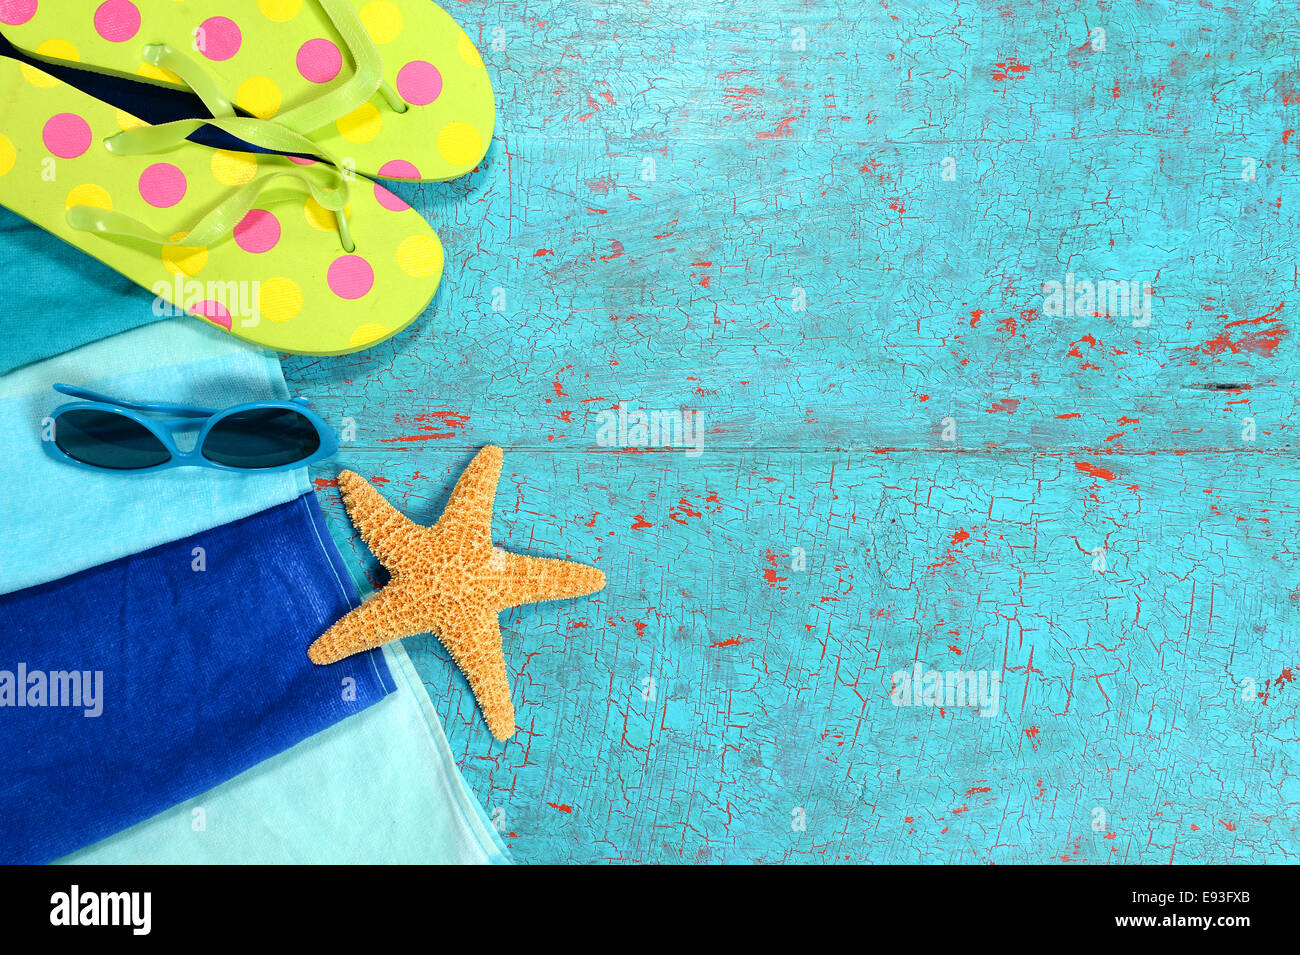 Beach towel, sunglasses, starfish and flip flops over painted wood planks - Stock Image